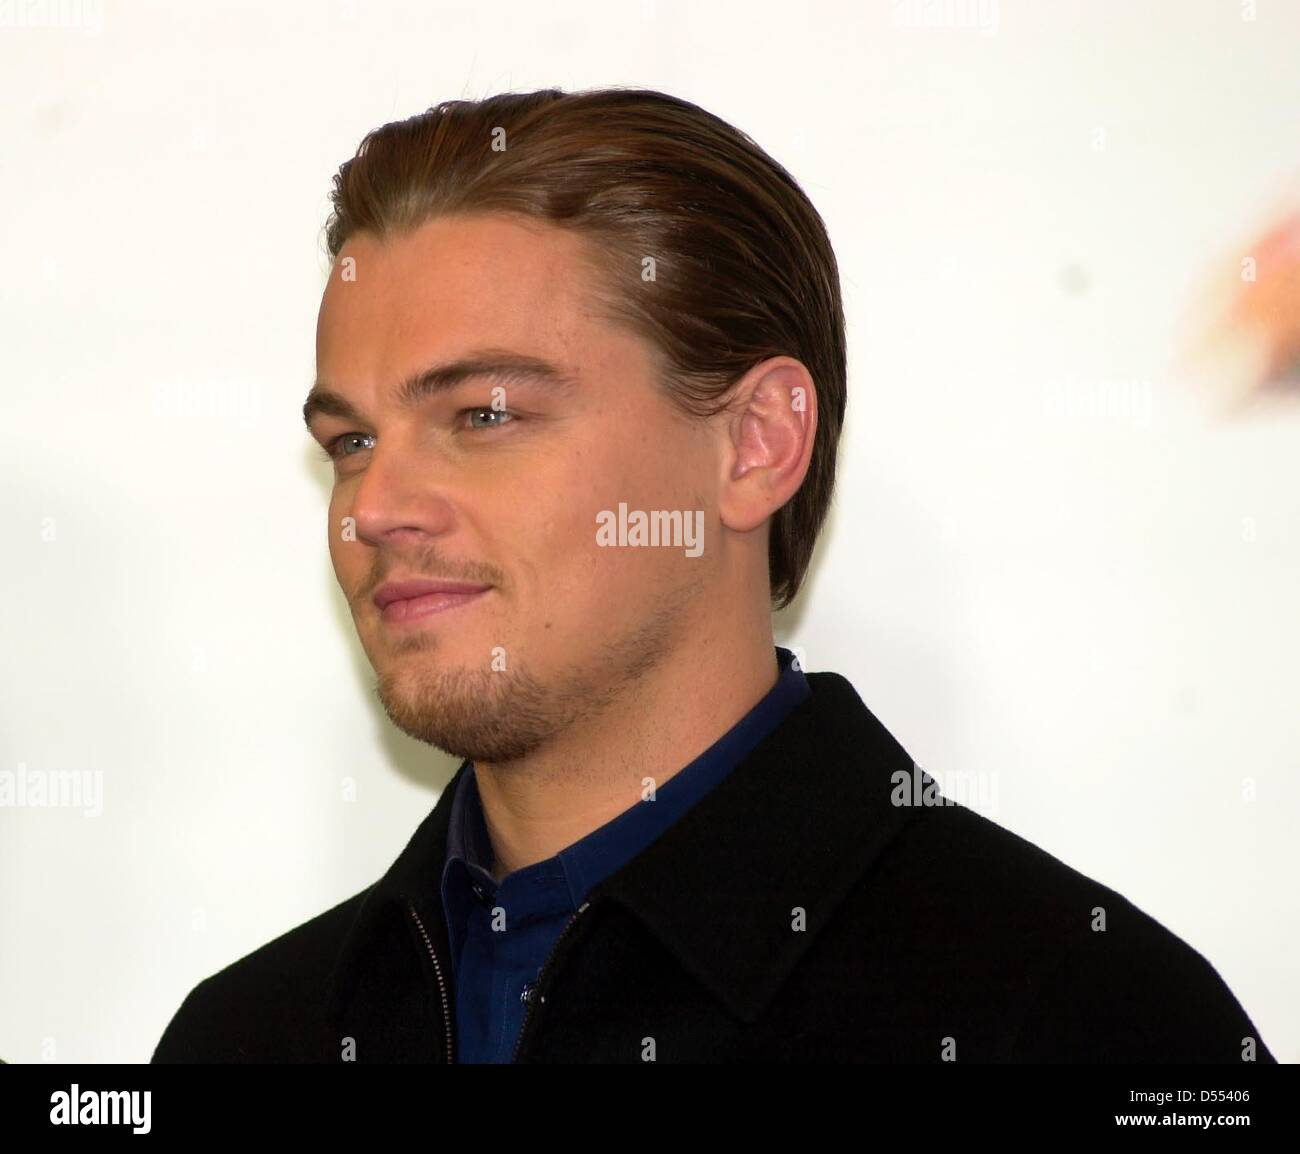 Leonardo Dicaprio At The Press Conference Of The New Film Catch